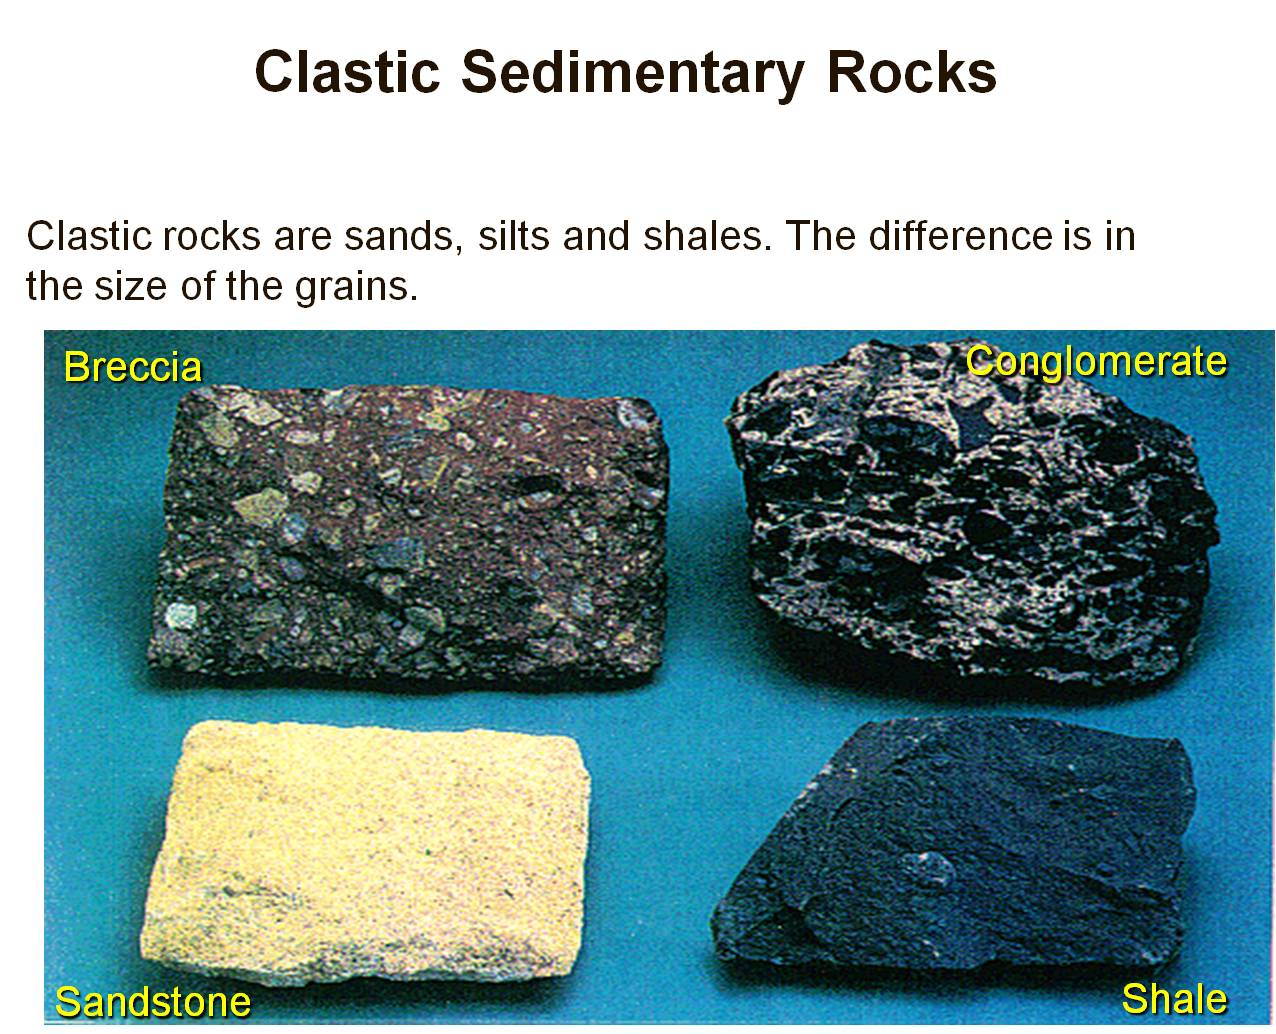 Clastic sedimentary rocks can be directly dated using isotopic dating 2